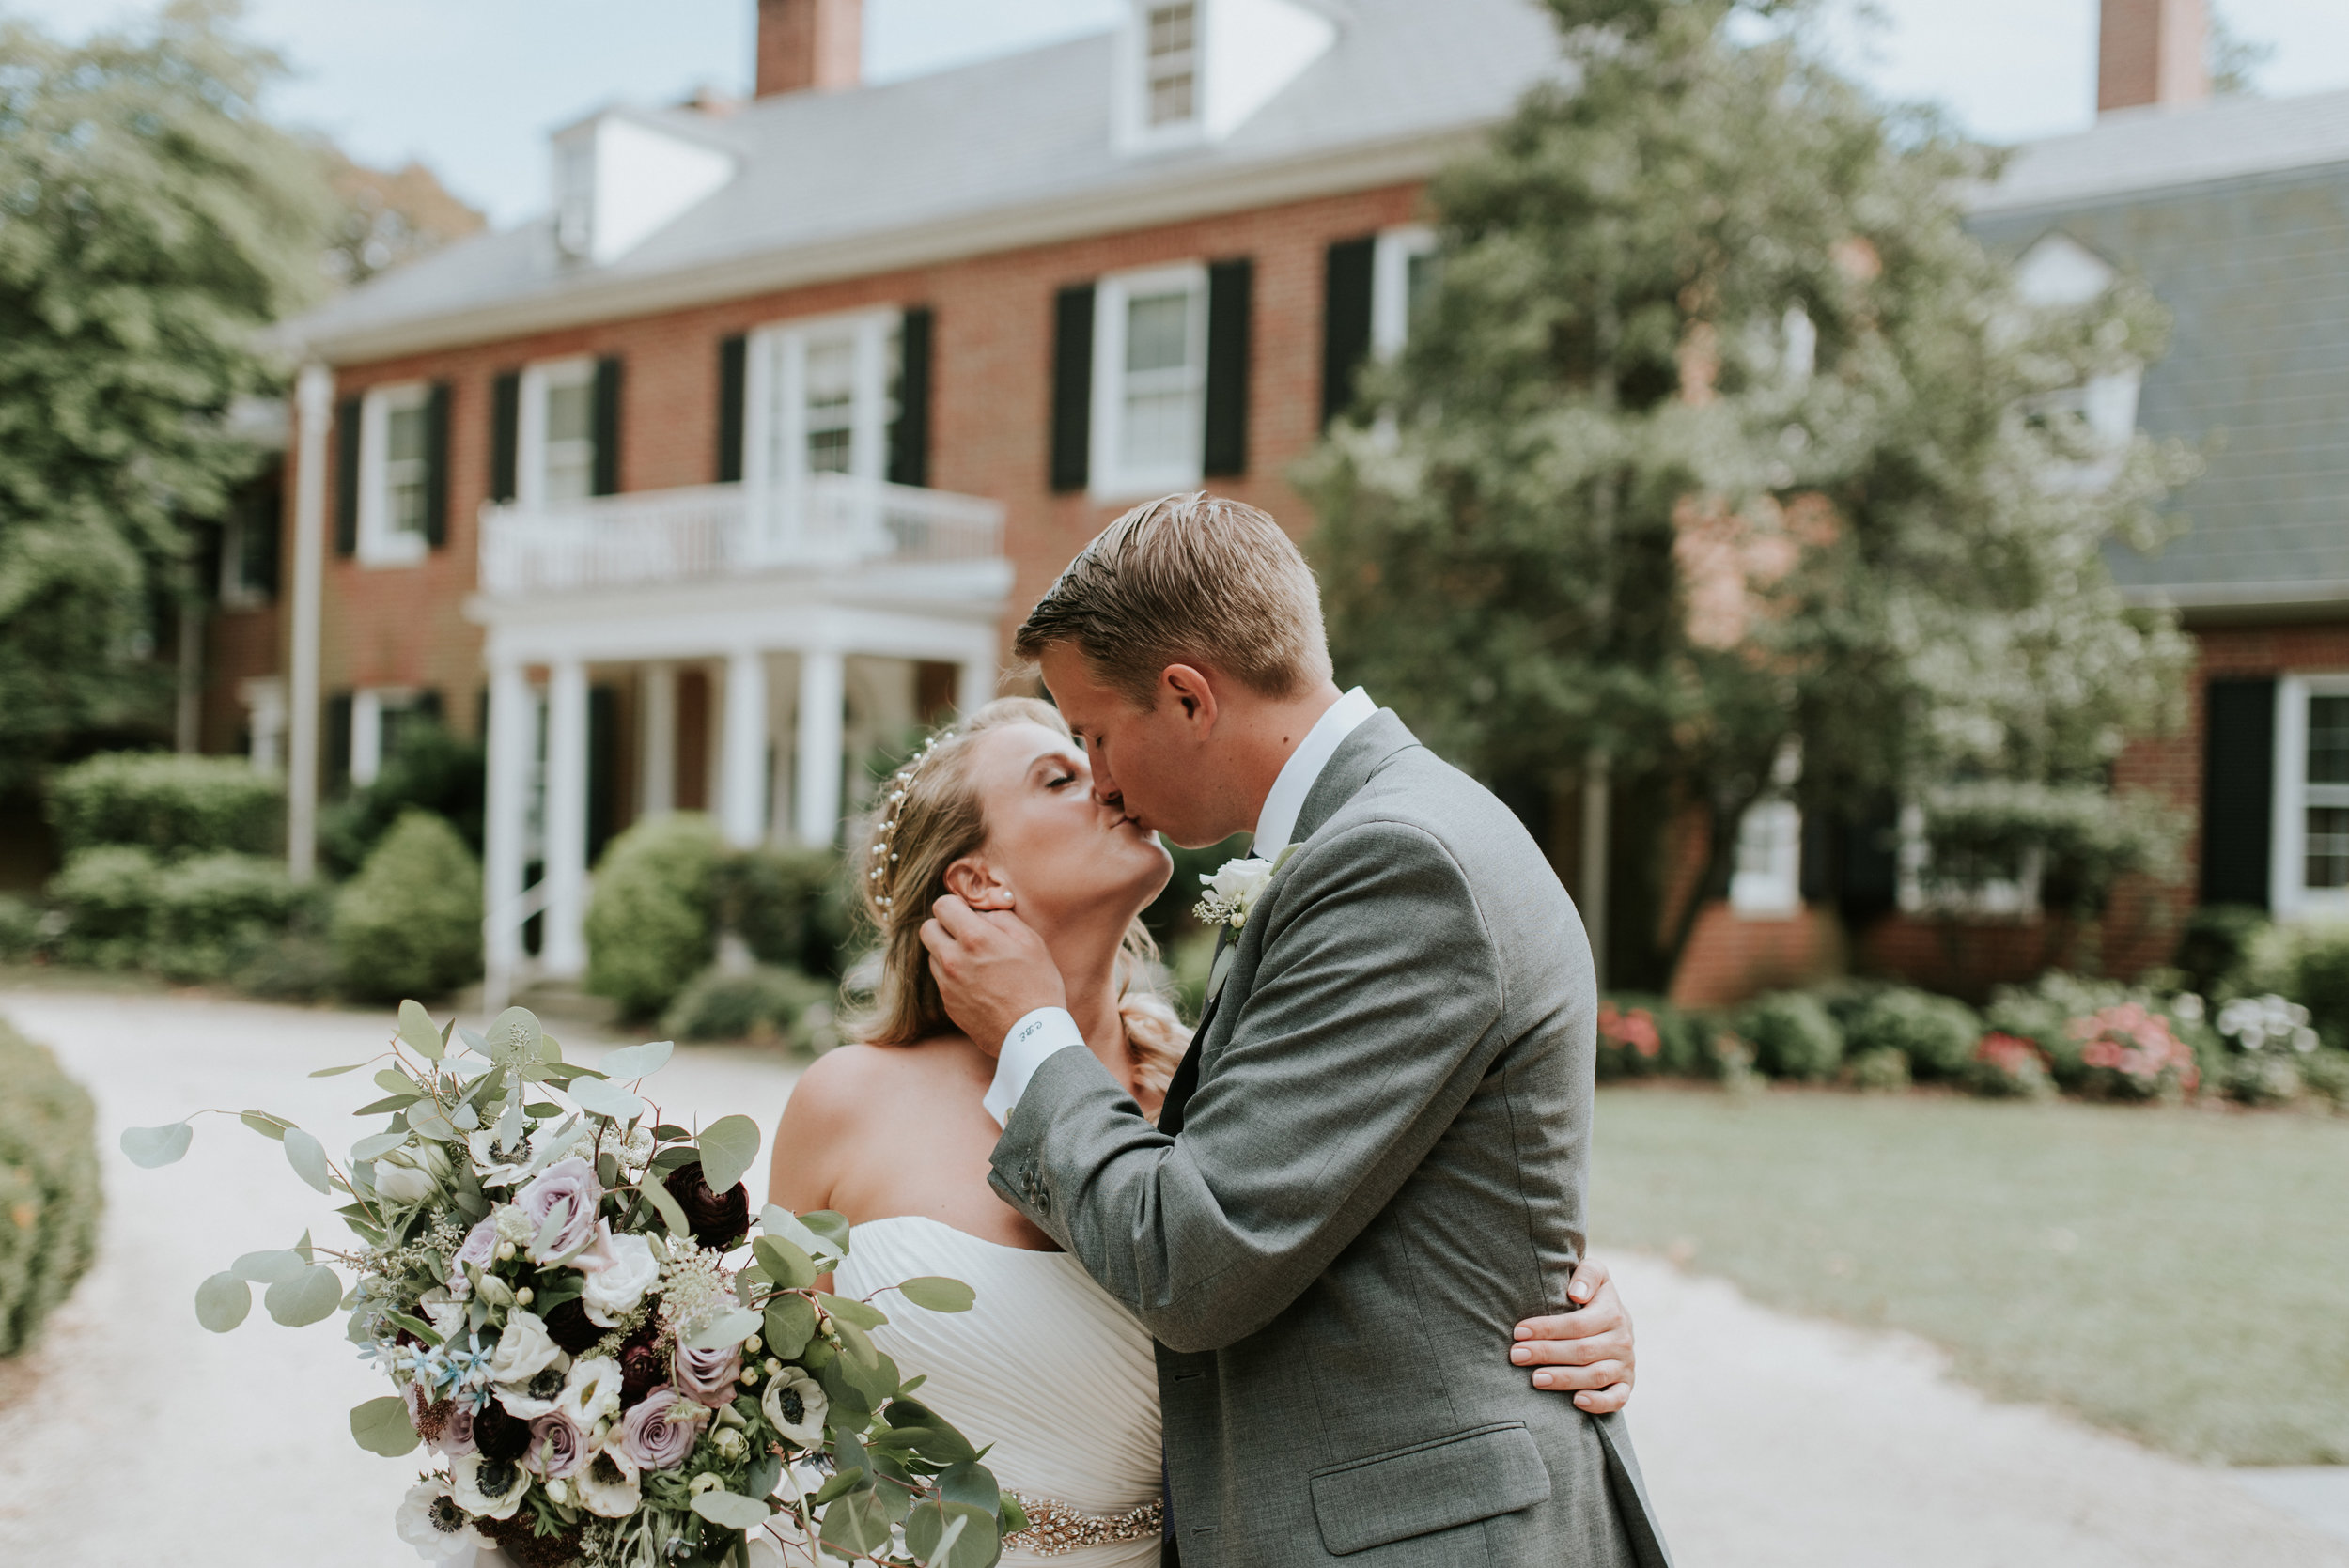 Rustic Oyster Themed Eastern Shore Maryland Outdoor Wedding by East Made Event Company Wedding Planner and Bekah Kay Creative277.jpg